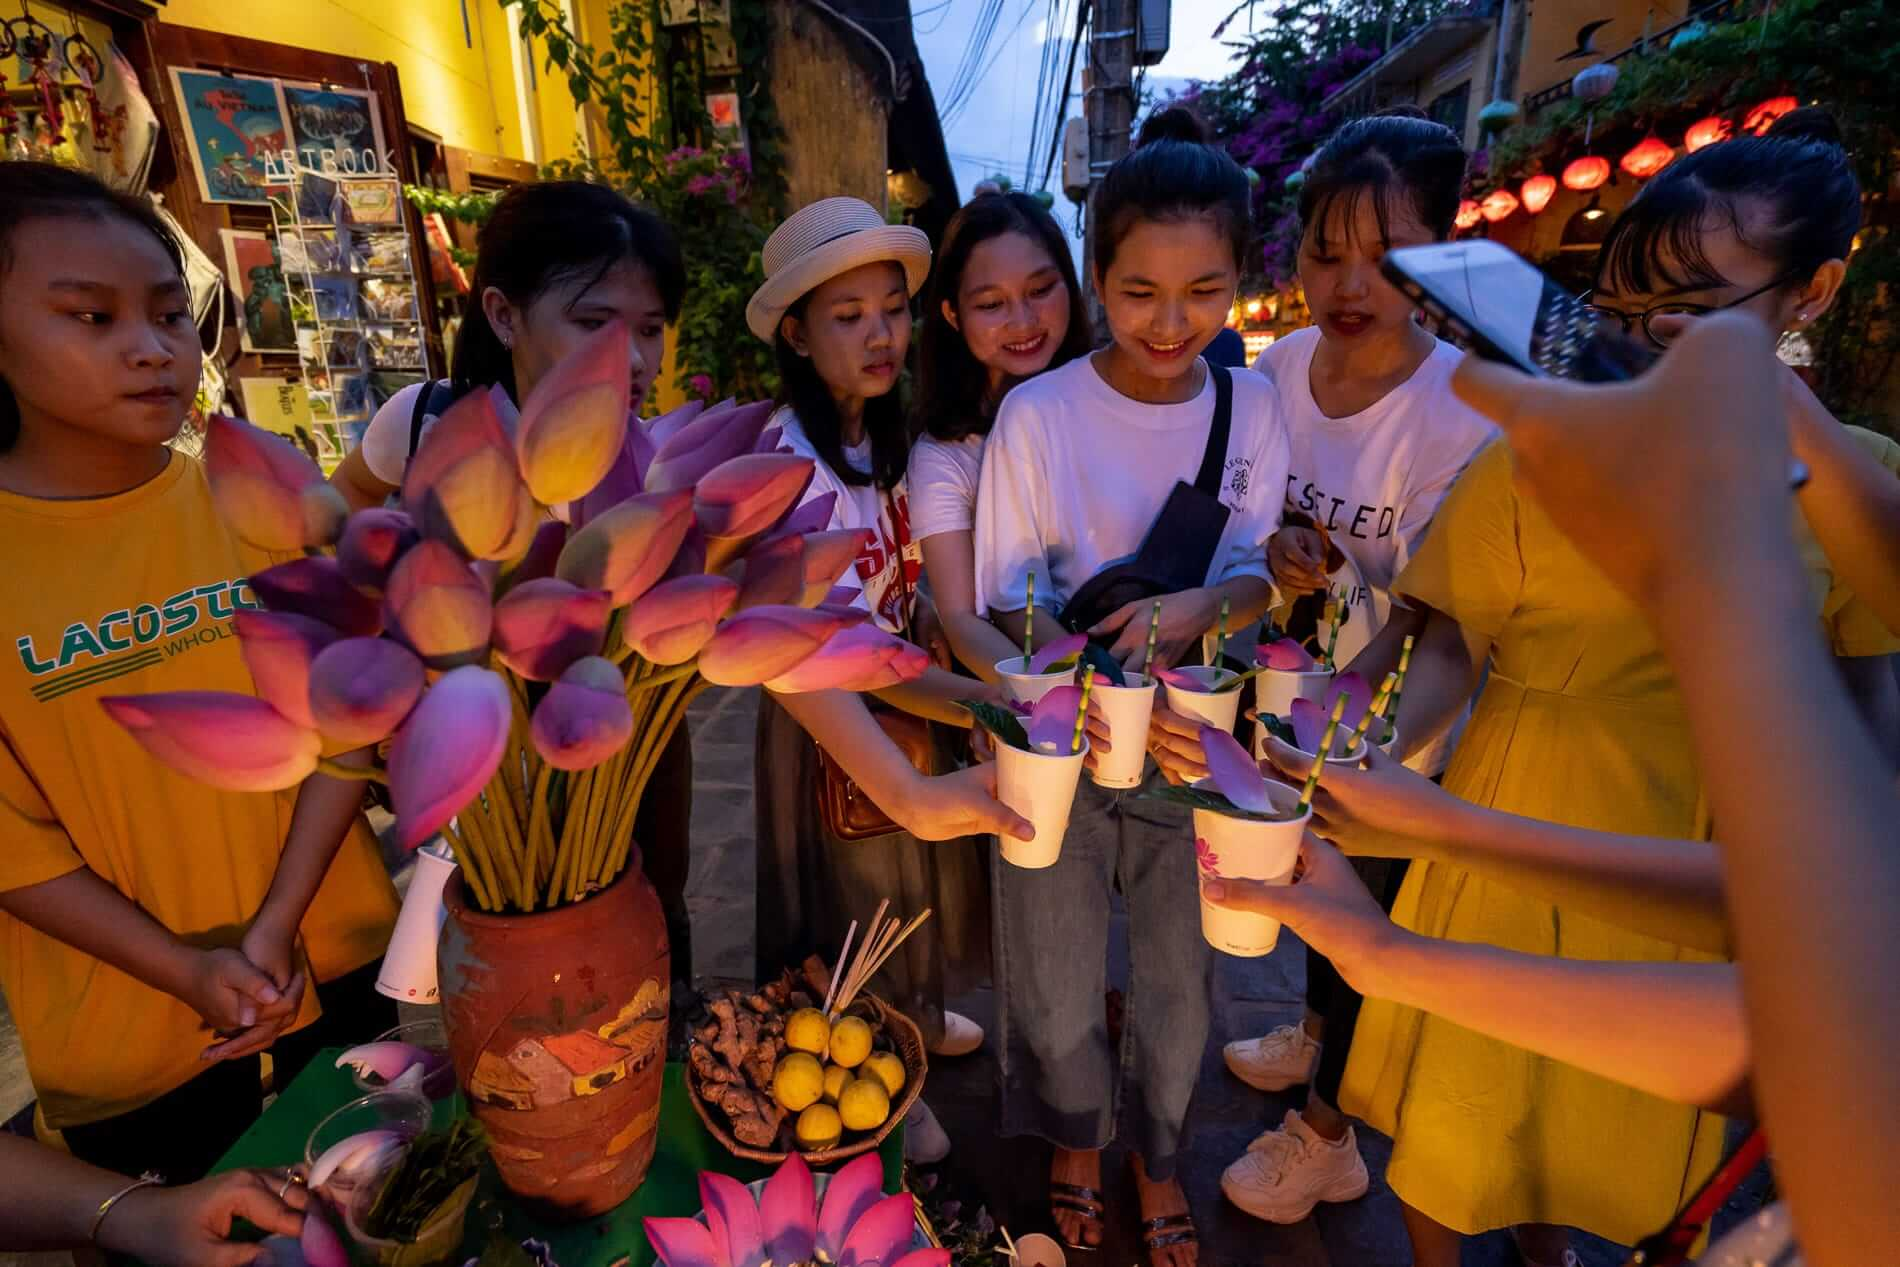 A group enjoying a herbal tea on the street